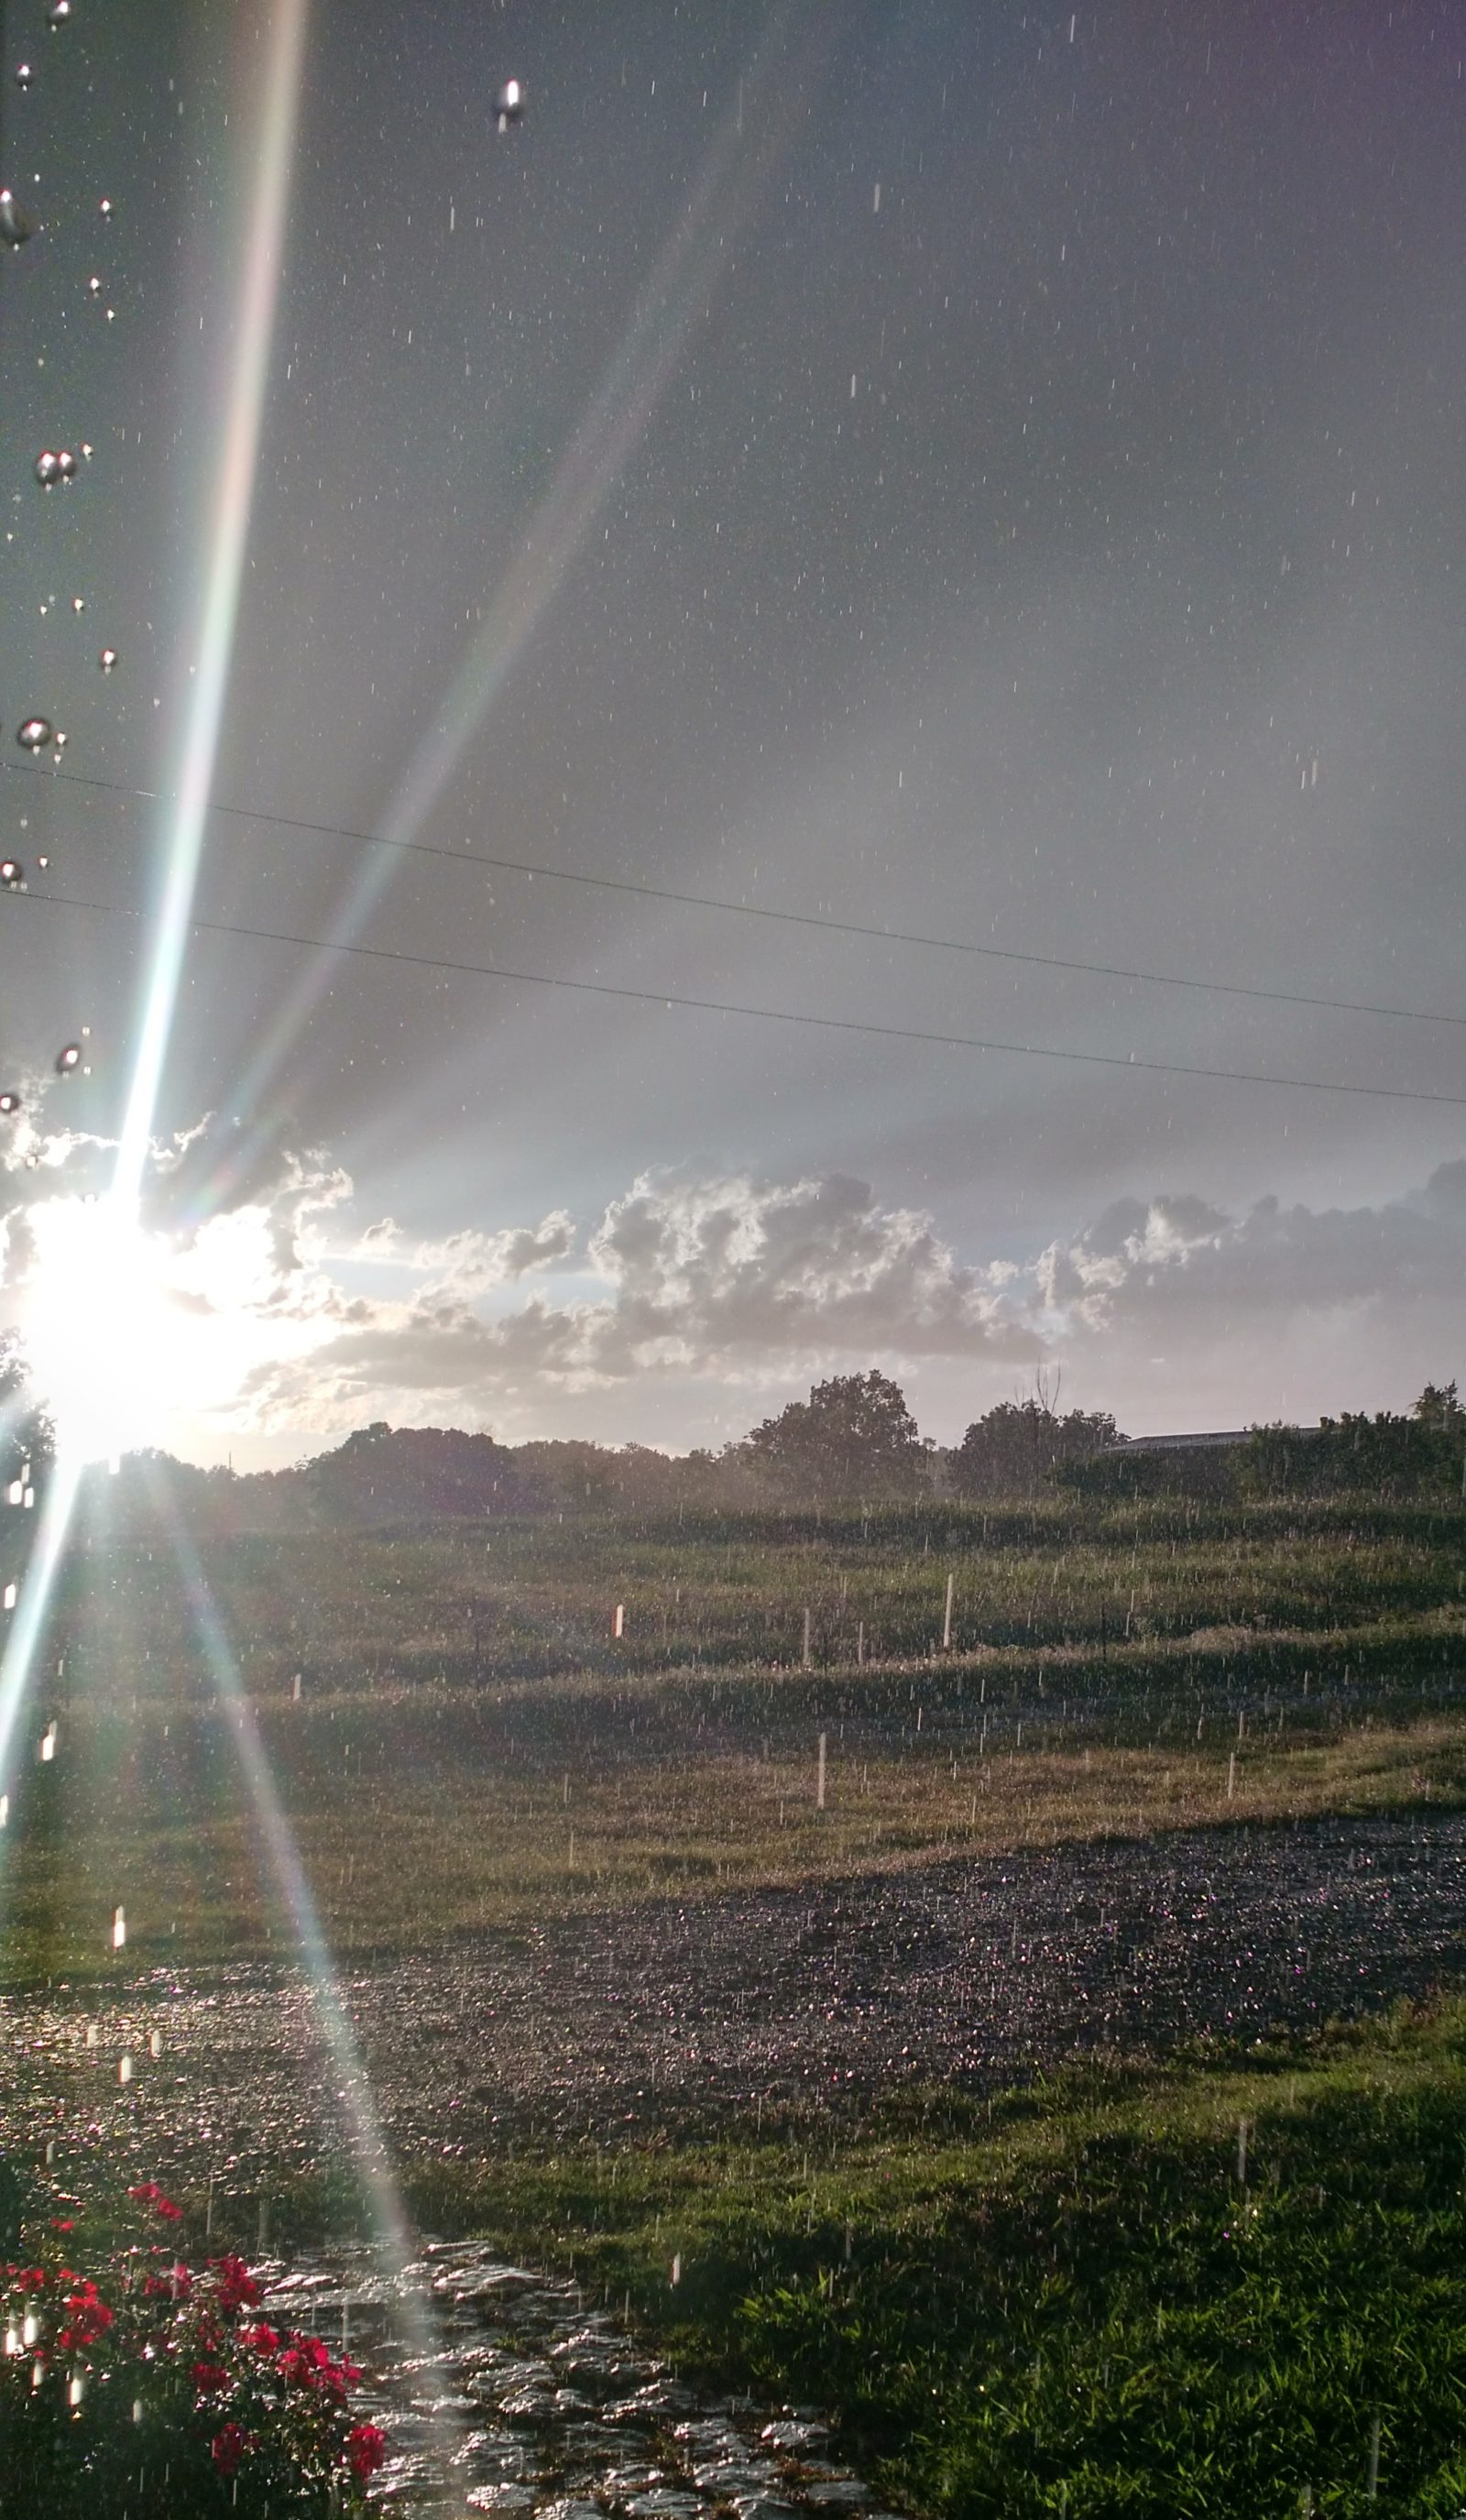 The sunshine during the storm